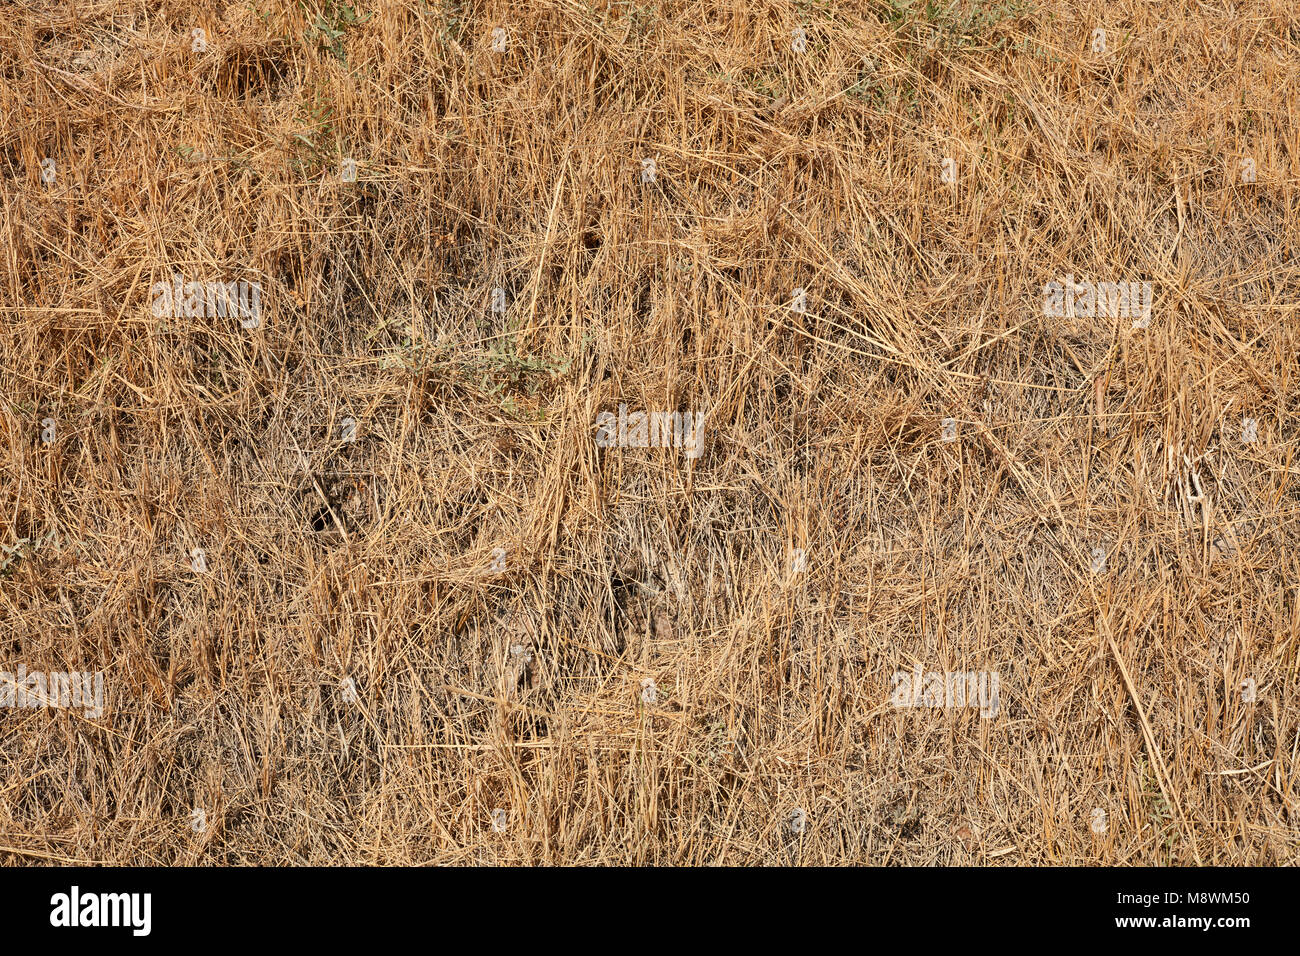 grass field from above. Dried Beige Grass Texture Background In Summer From Above - Stock Image Field Y